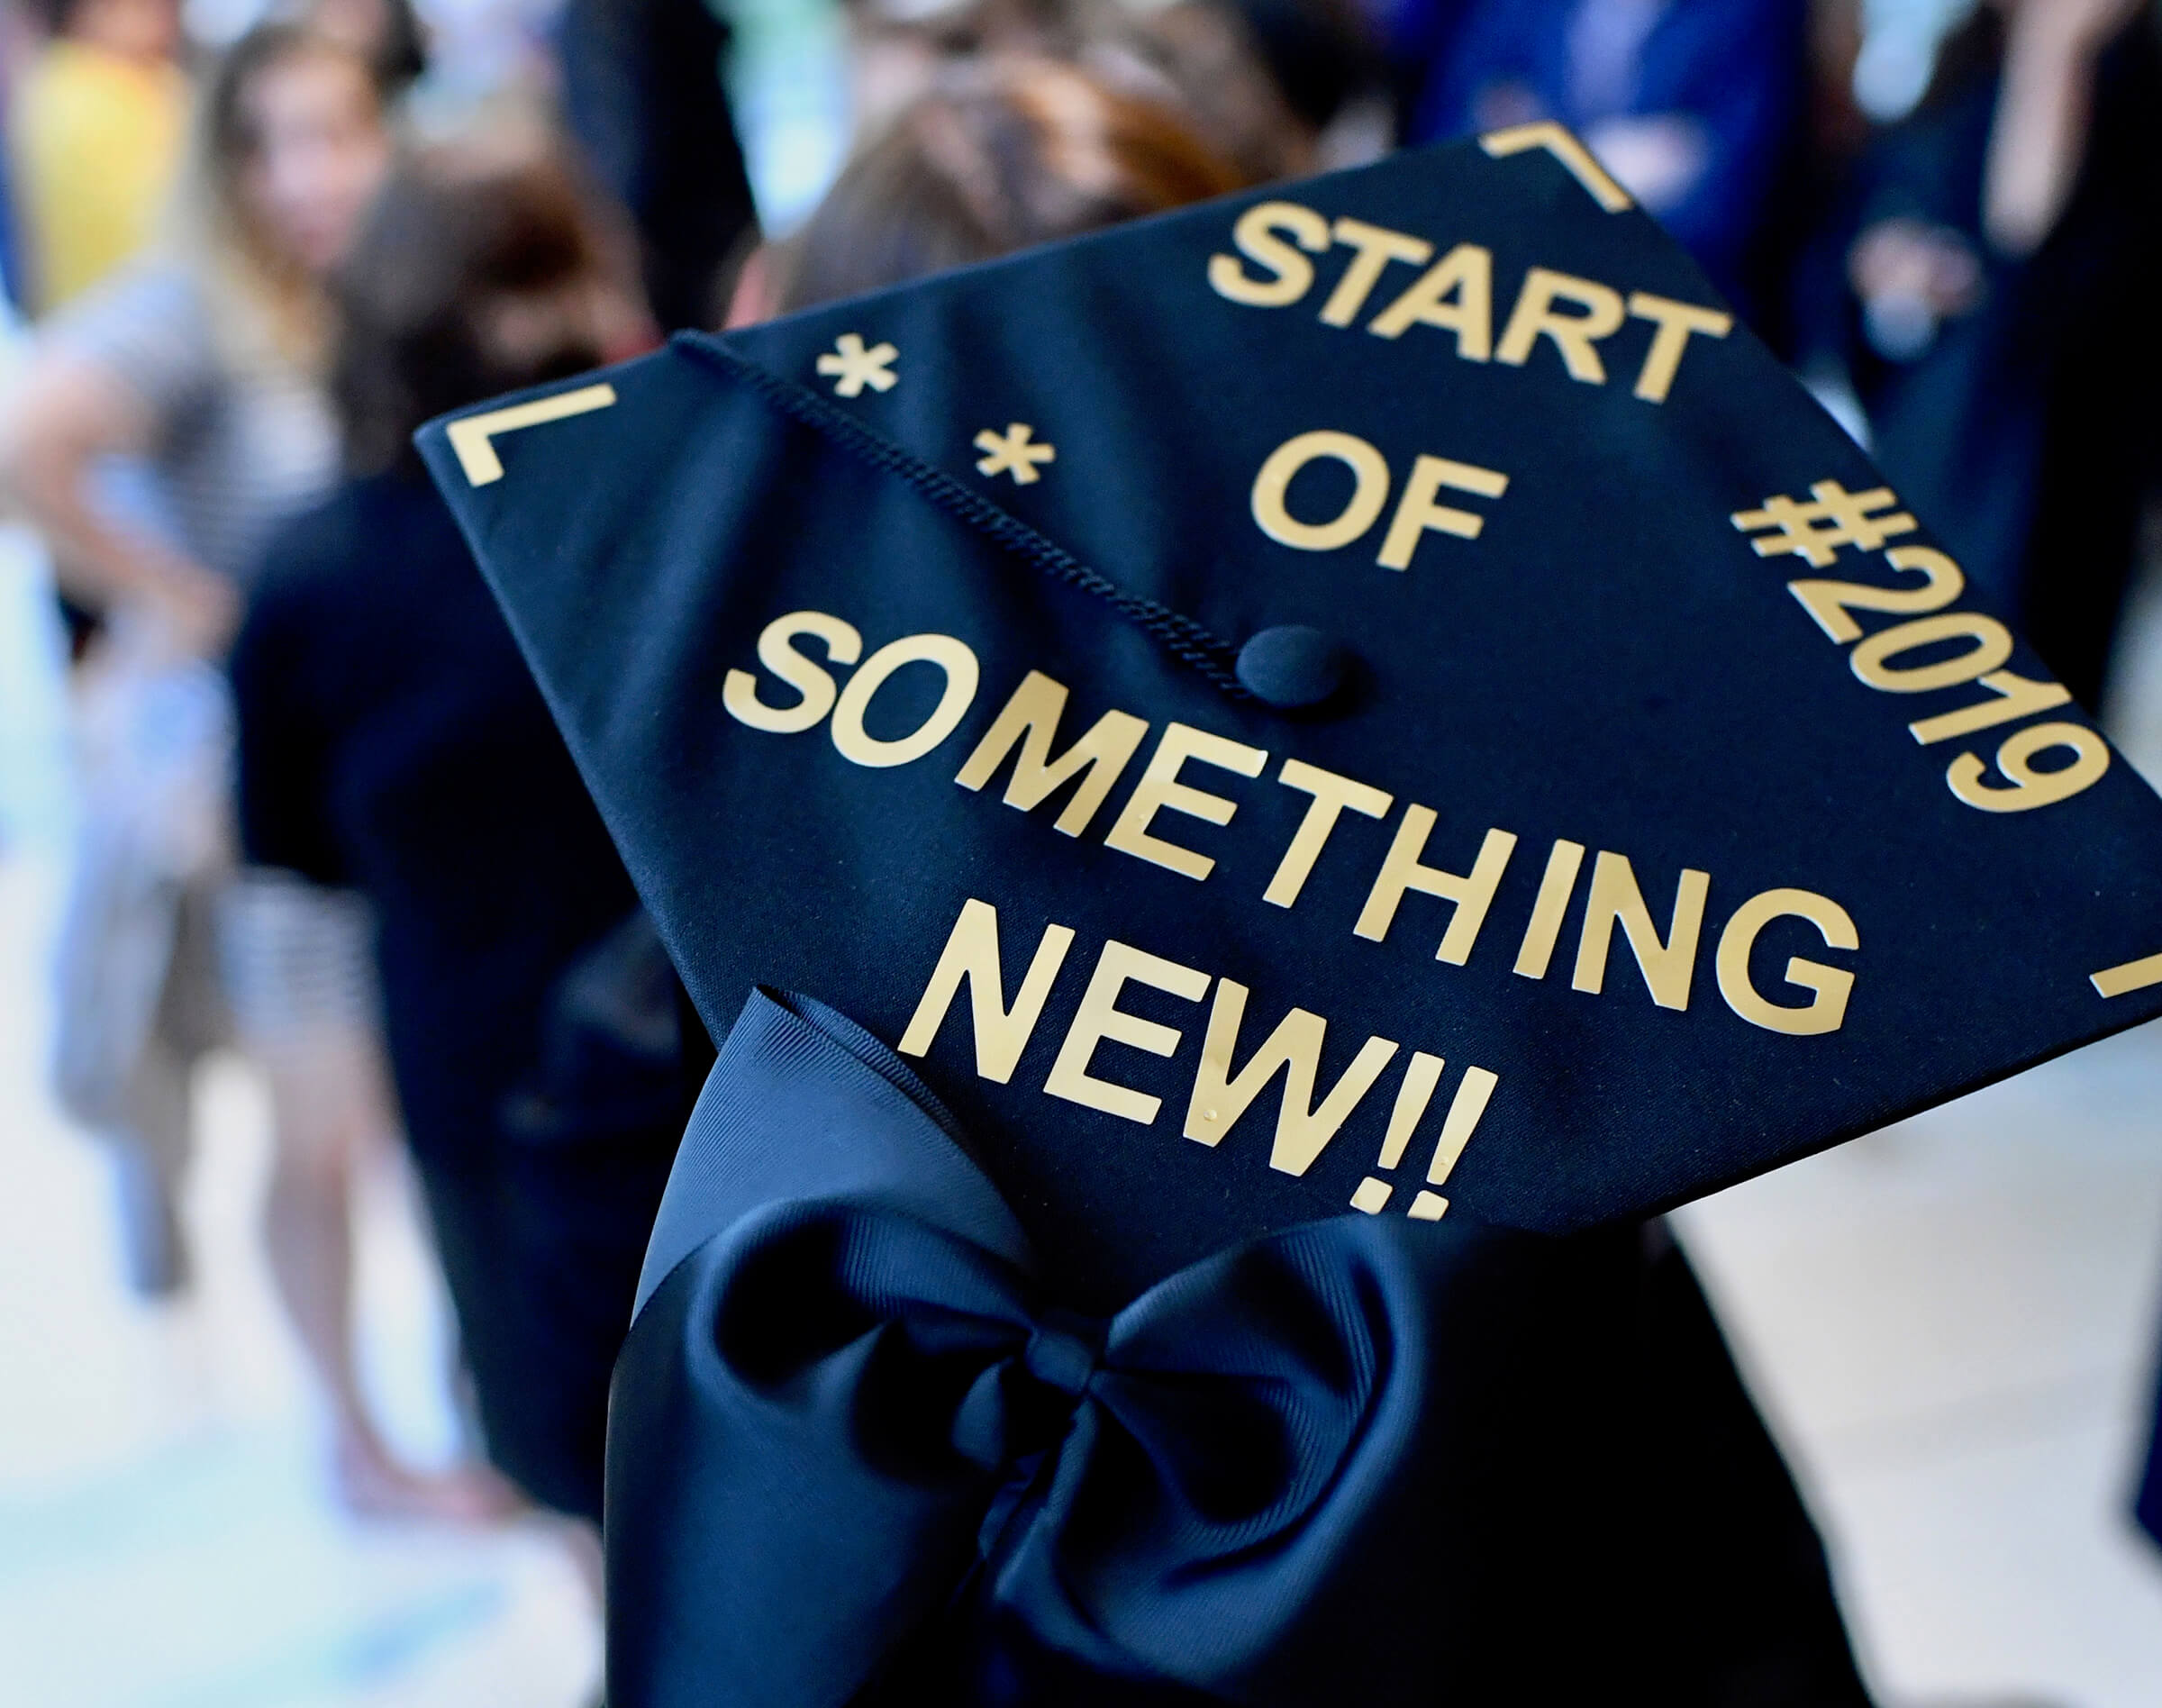 It's the start of something new for our class of 2019 Lander Colleges graduates!